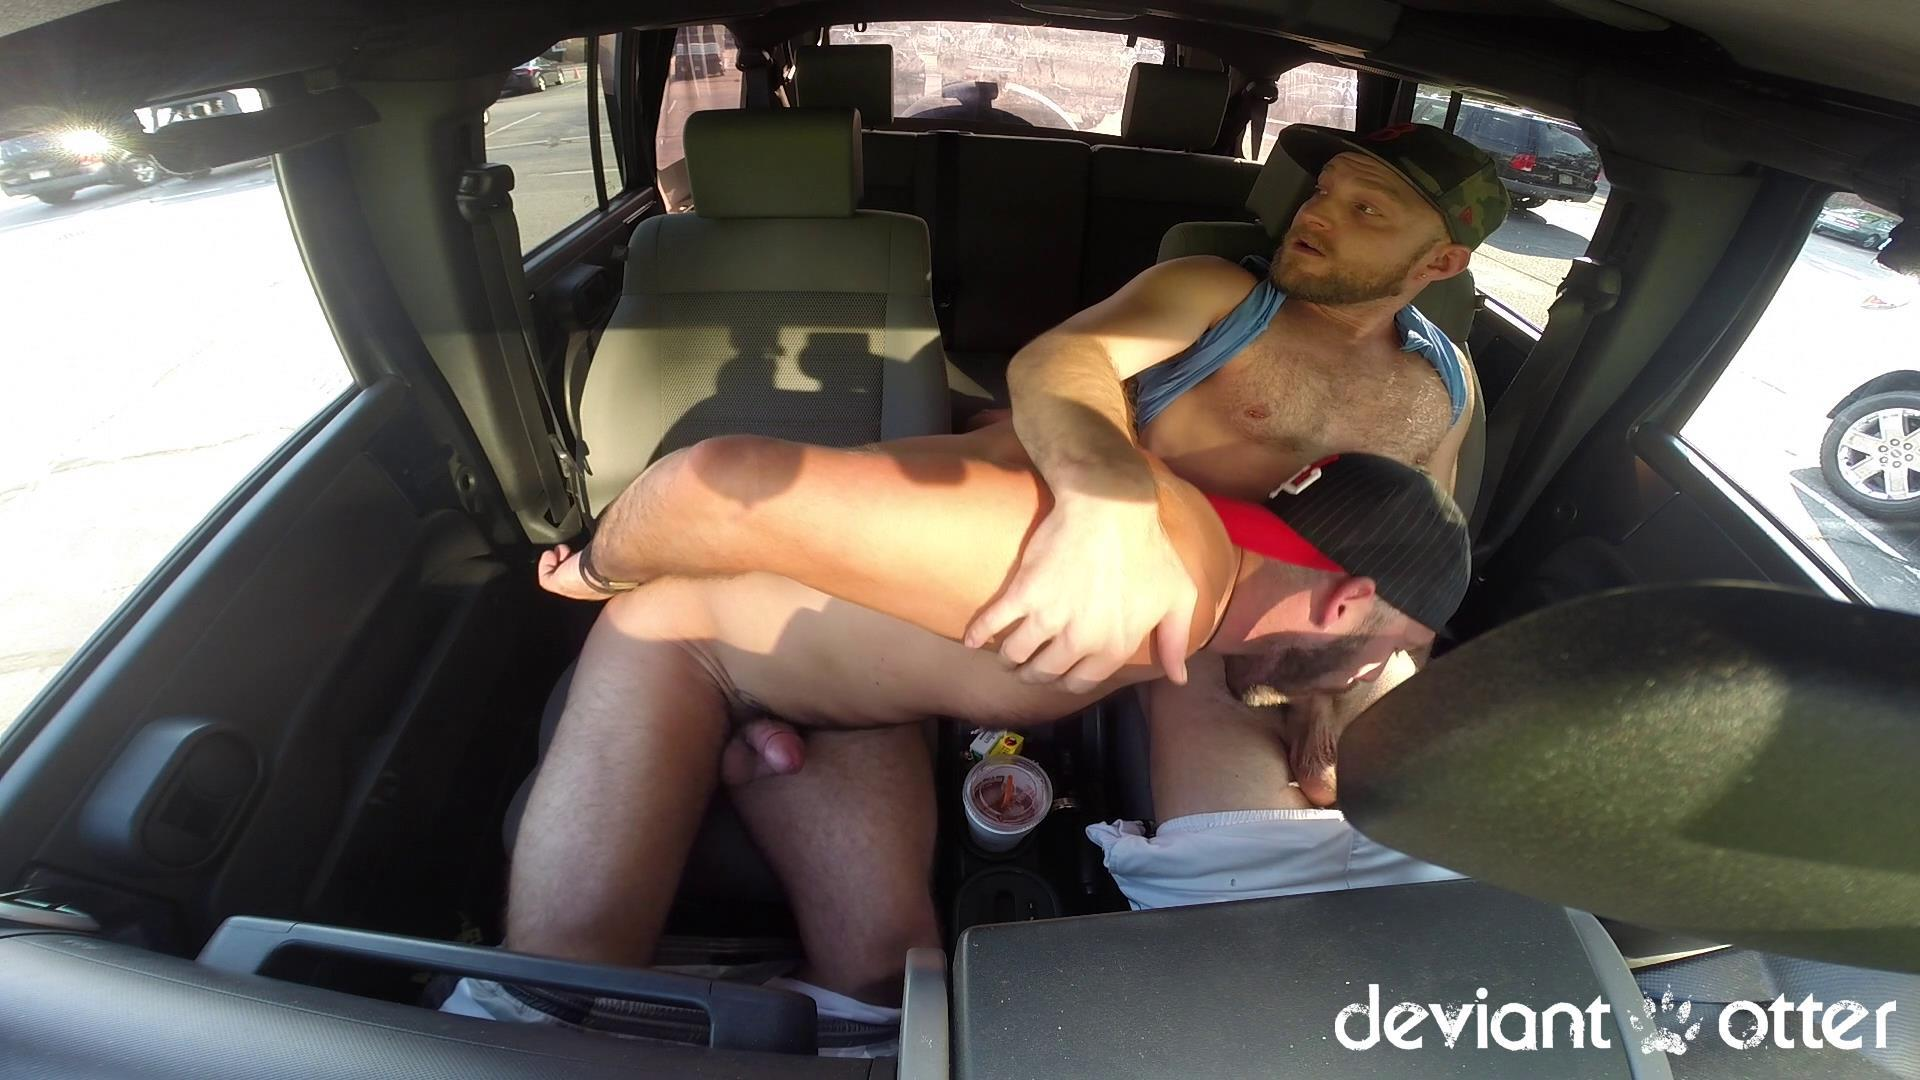 Deviant Otter Xavier Sucking Cock In Public Hairy Guys Amateur Gay Porn 14 Masculine Hairy Guys Sucking Each Others Cock In A Parking Lot